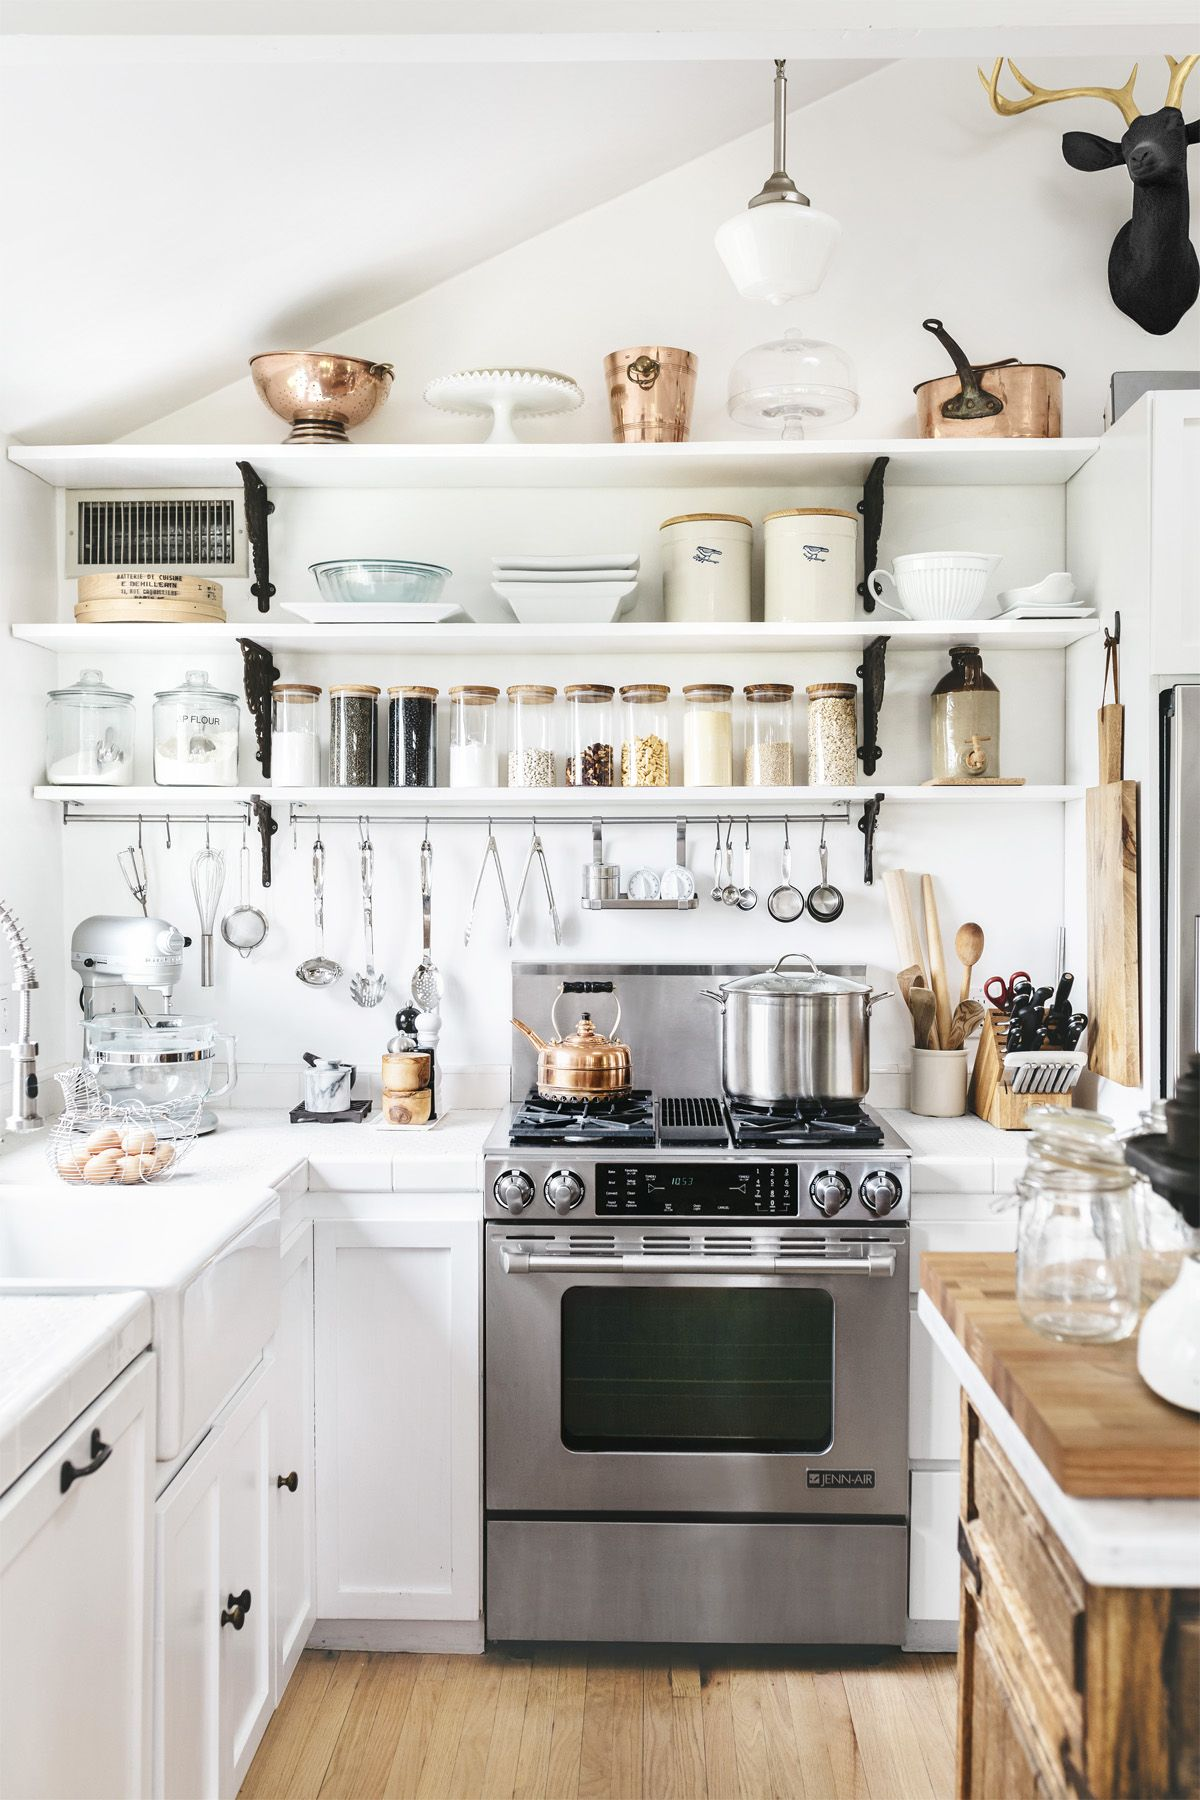 COURTESY OF \ CITY FARMHOUSE STYLE DESIGNS FOR A MODERN COUNTRY LIFE BY KIM LEGGETT. PHOTOGRAPH BY ALISSA SAYLOR & 24 Best White Kitchens - Pictures of White Kitchen Design Ideas